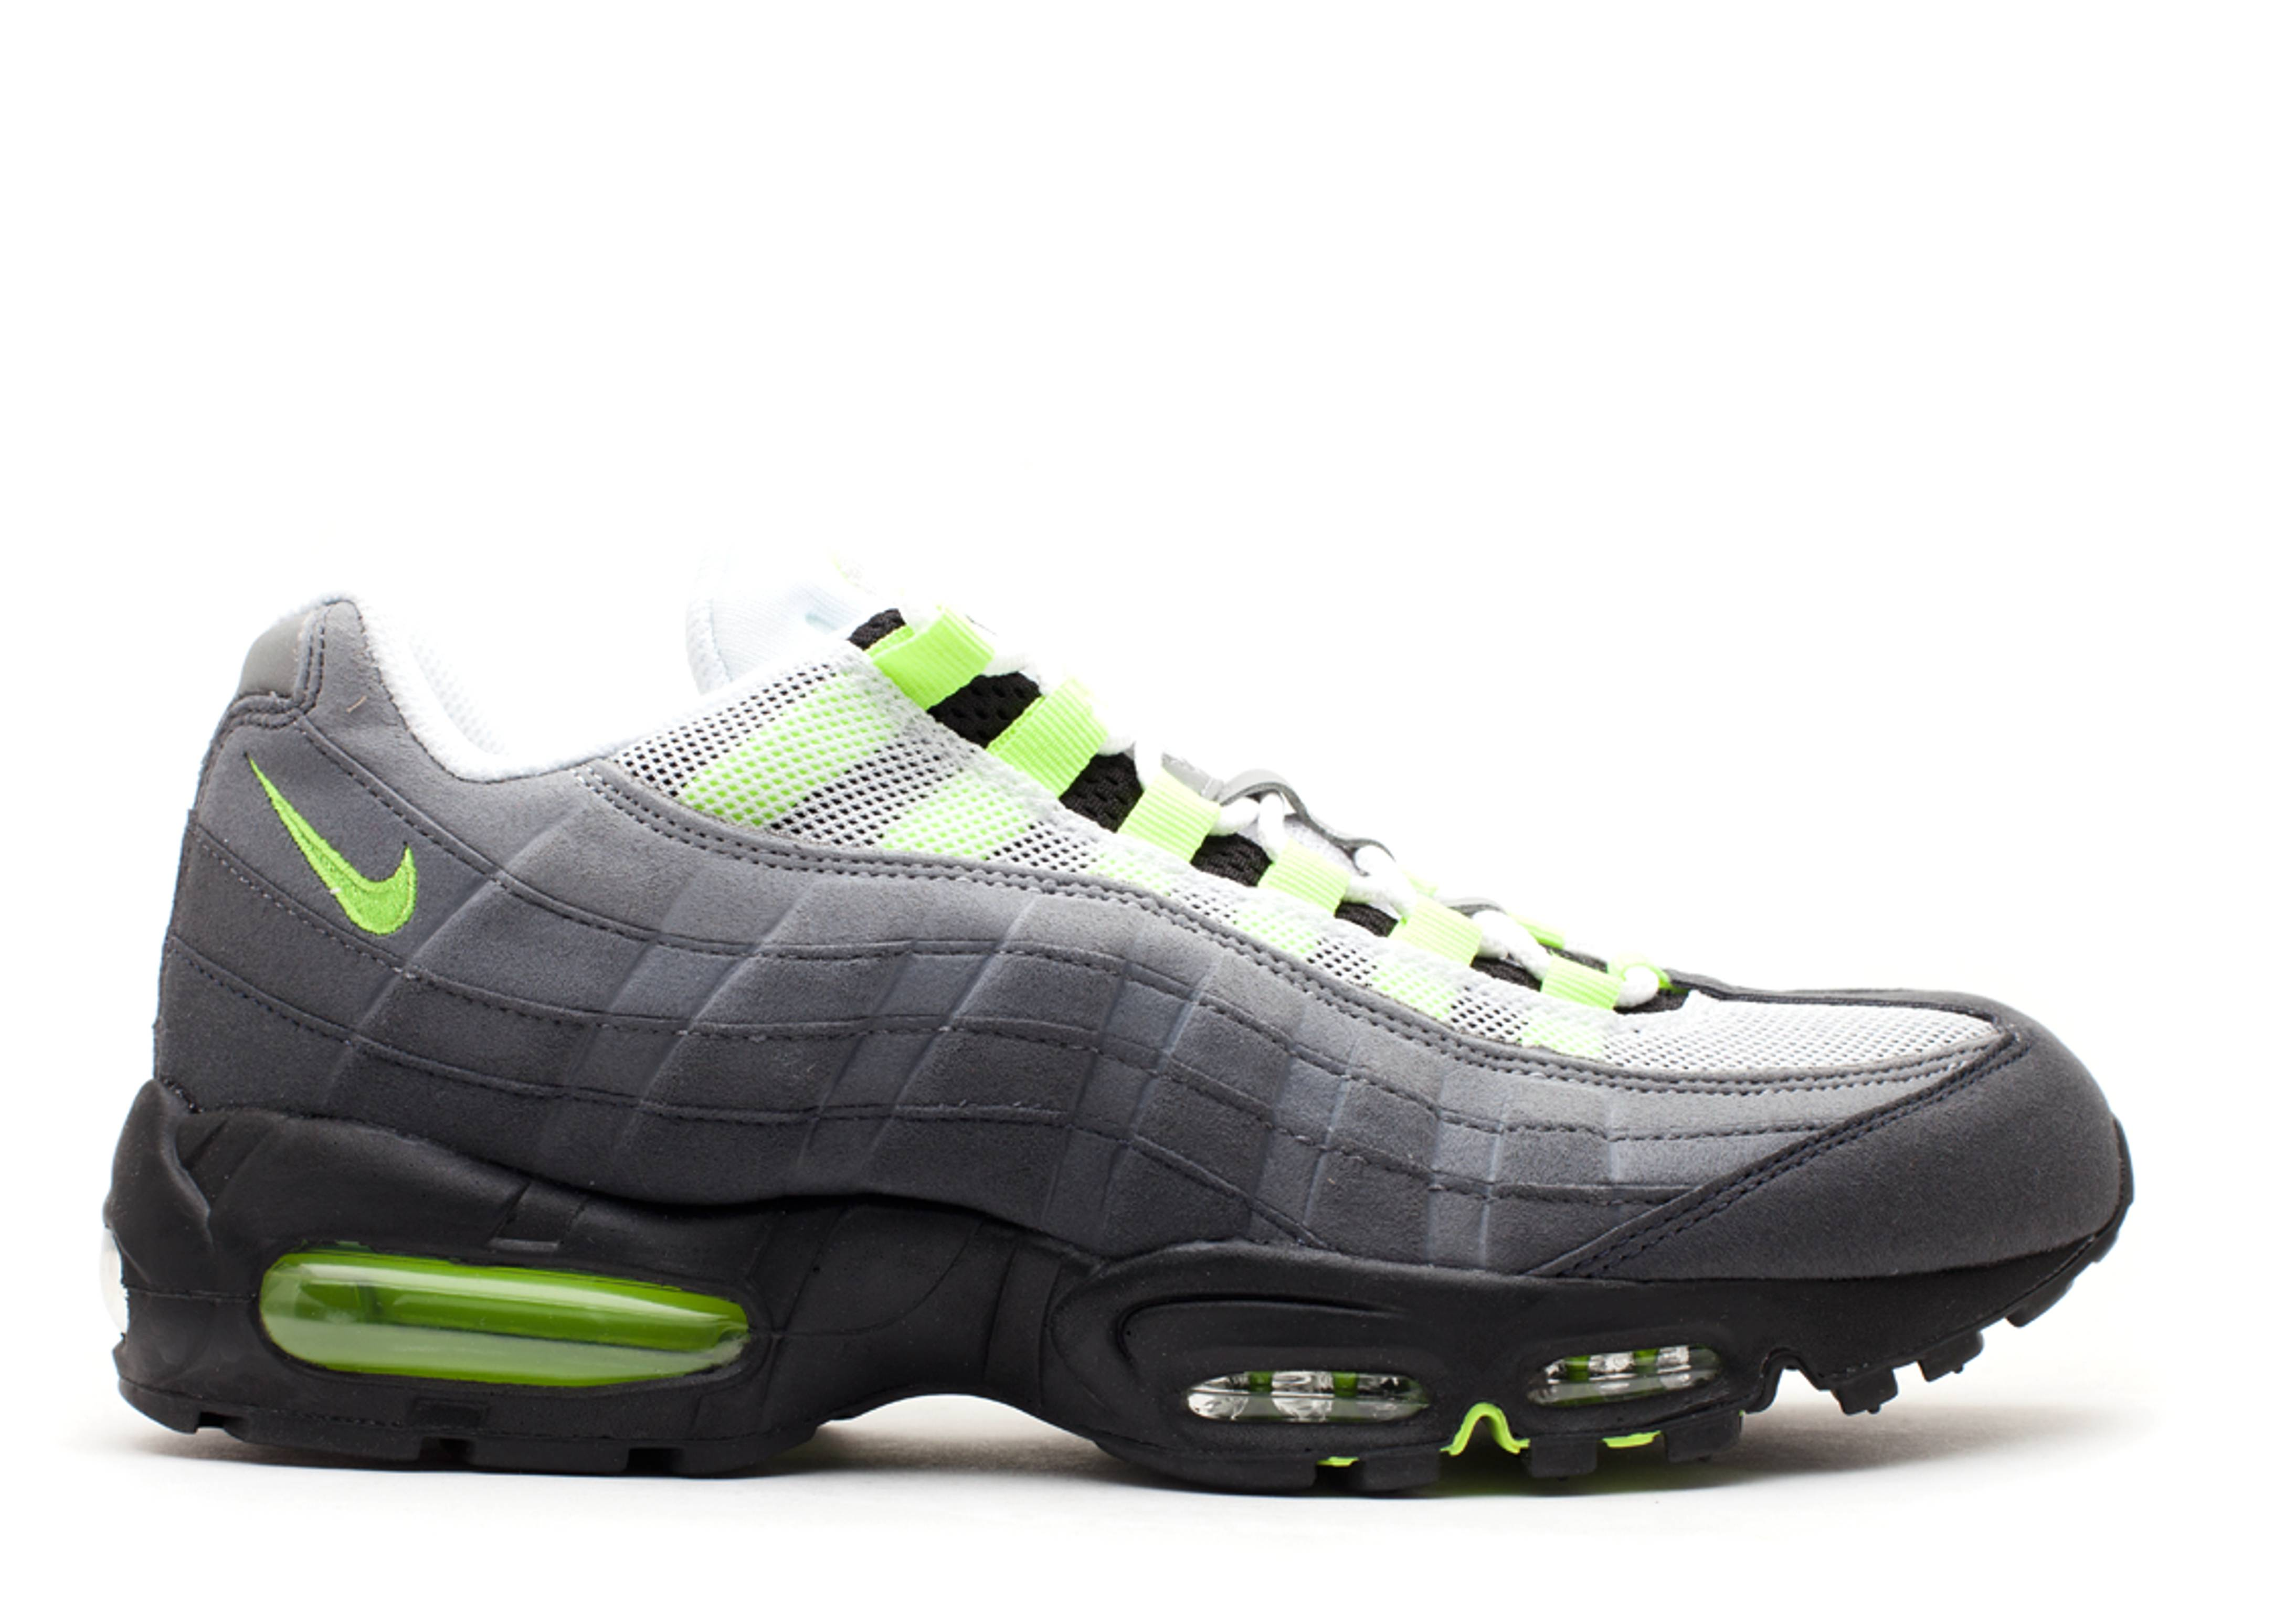 nike air max 95 og 2012 trainers sale. Black Bedroom Furniture Sets. Home Design Ideas